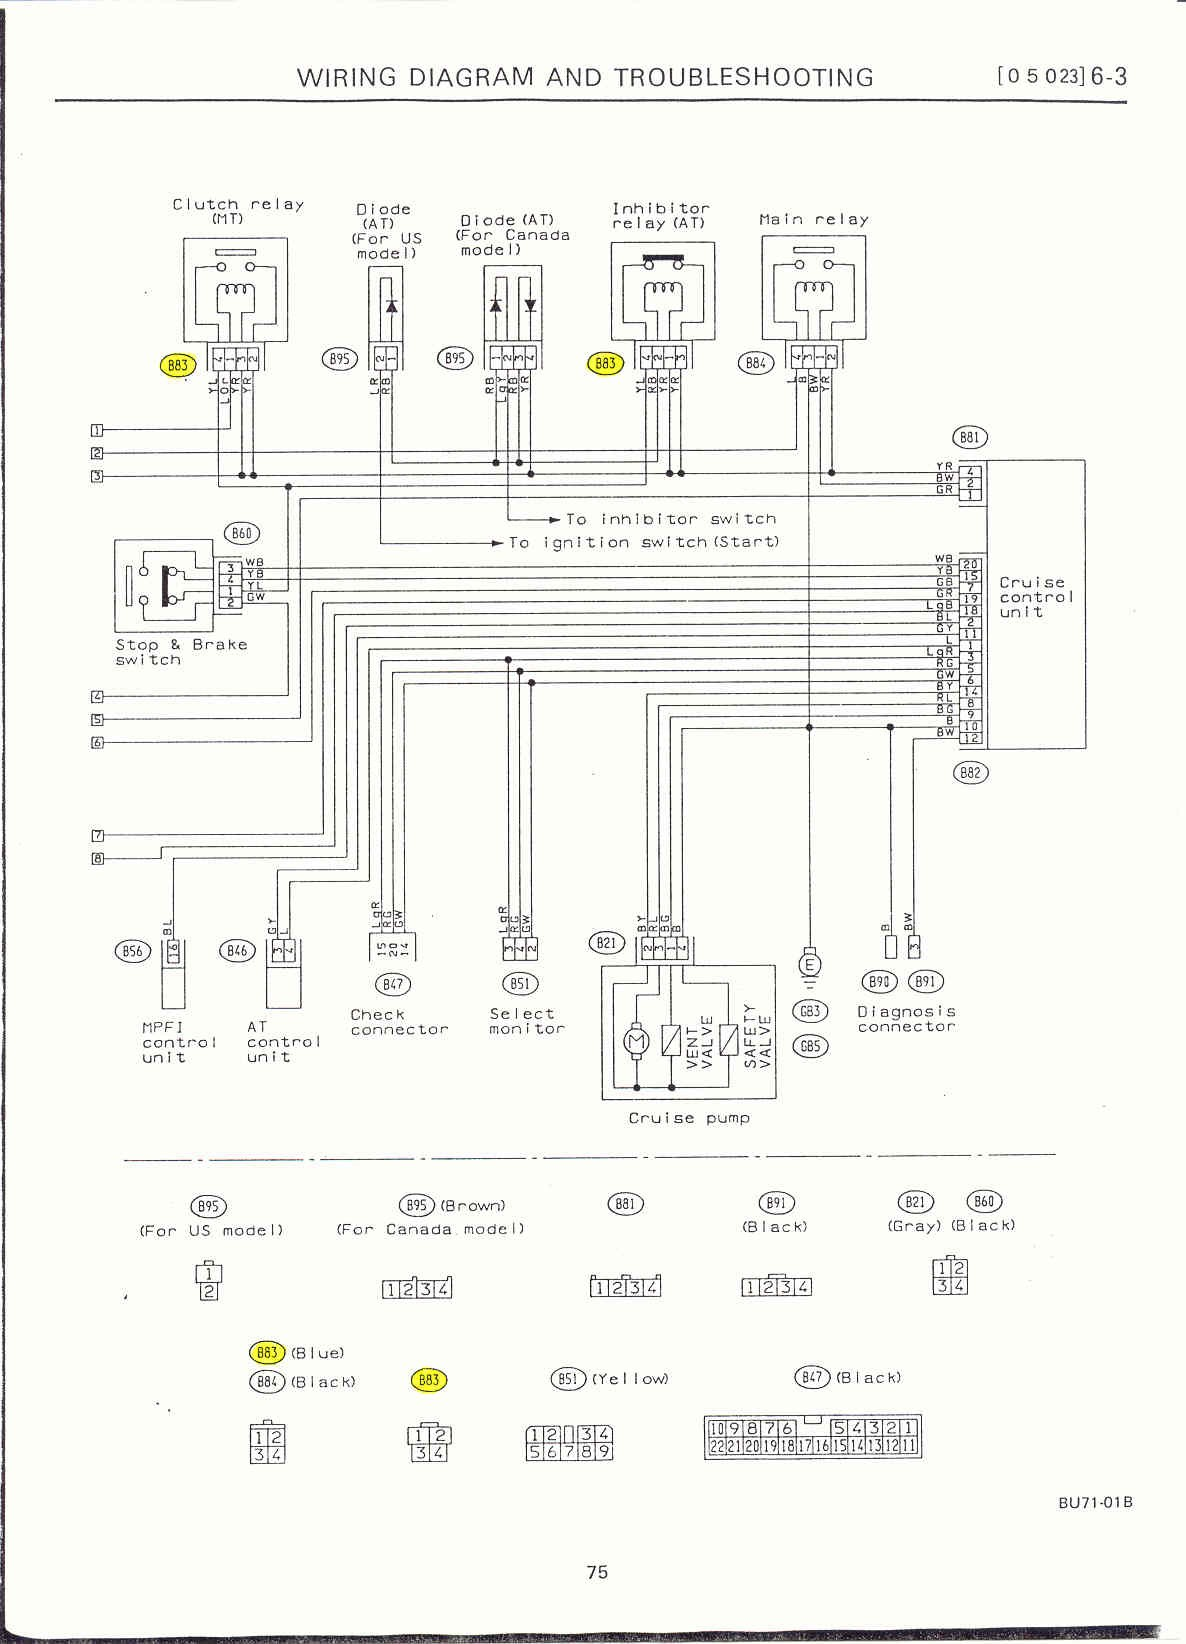 Subaru Impreza Wiring Diagram 1997 Subaru Legacy Wiring Diagram – Wire Diagram Of Subaru Impreza Wiring Diagram